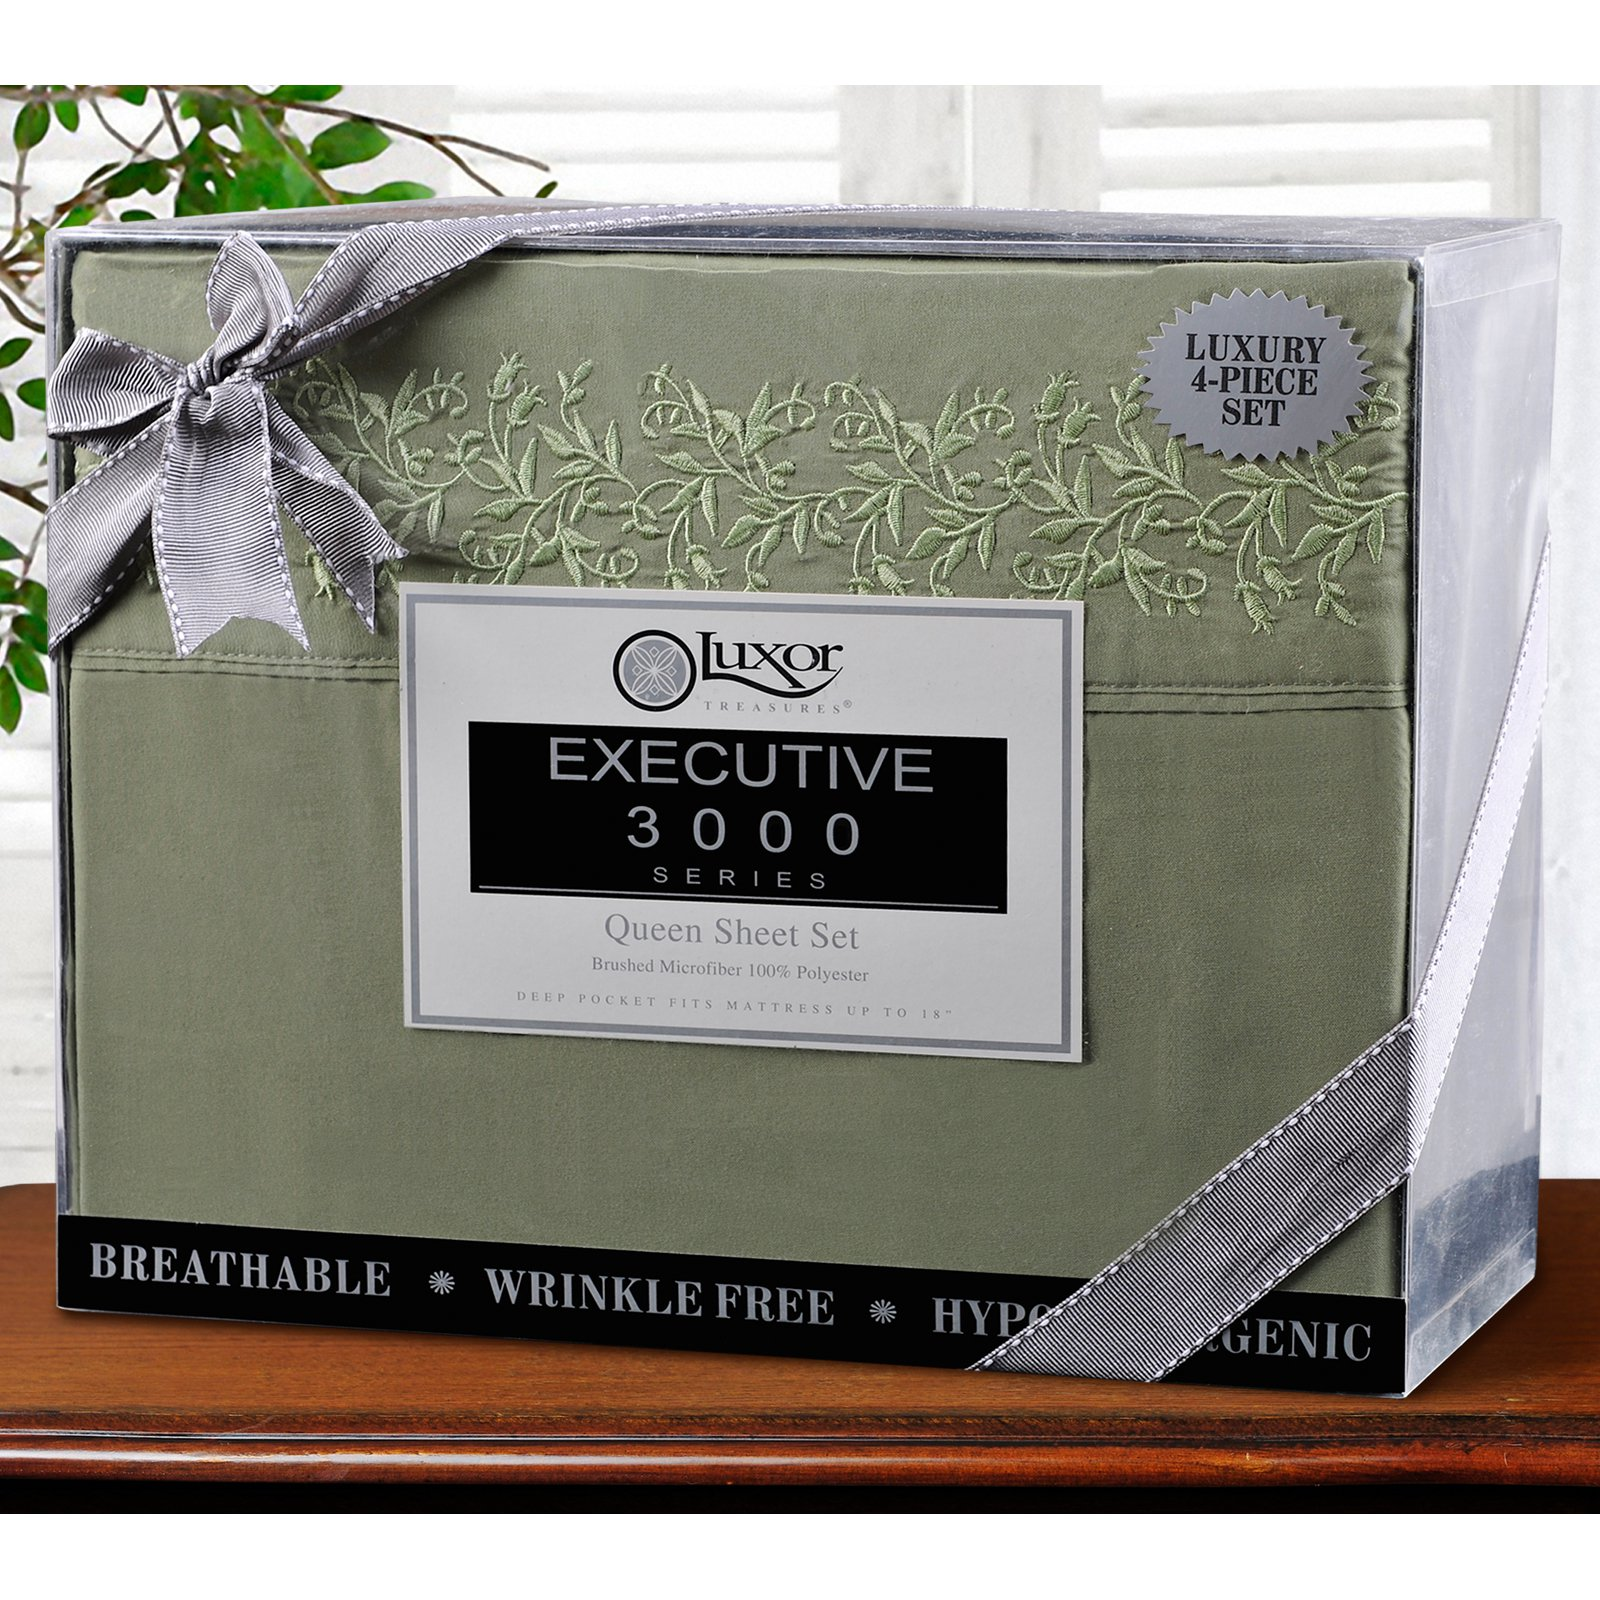 Superior Light Weight and Super Soft Brushed Microfiber, Wrinkle Resistant Sheet Set with Floral Lace Embroidery